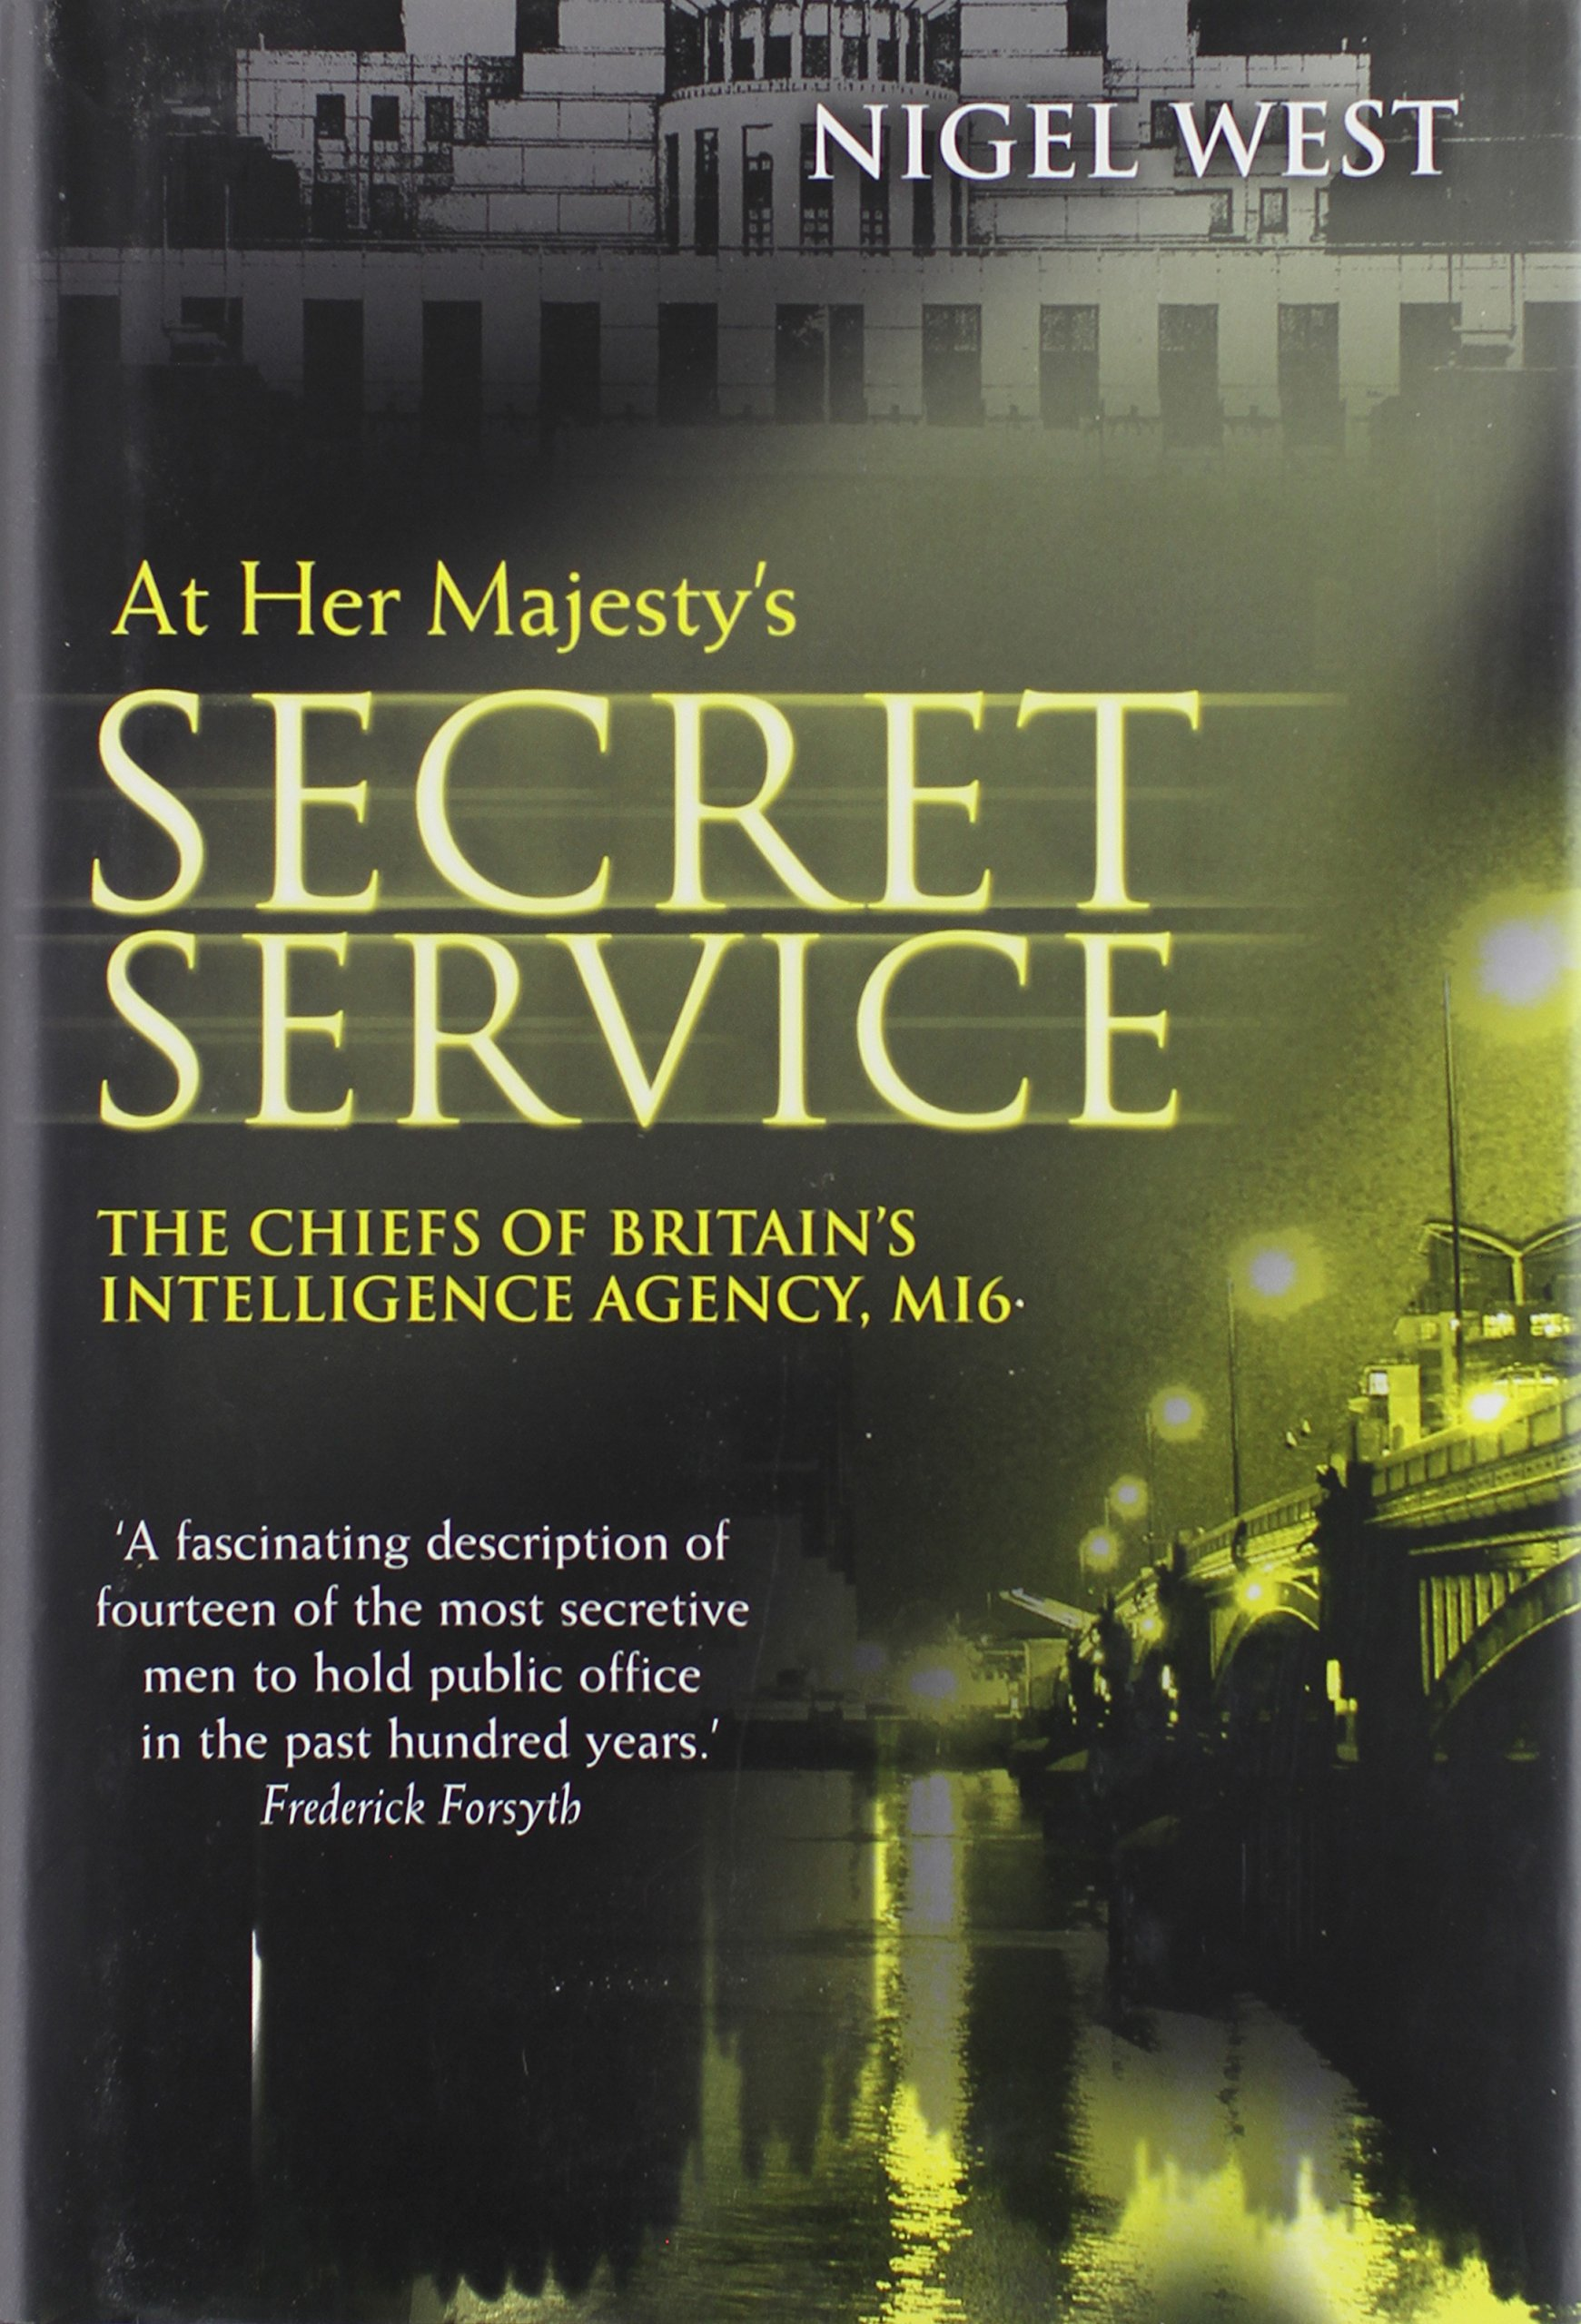 Download At Her Majesty's Service: The Chiefs of Britain's Intelligence Agency, MI6 ebook